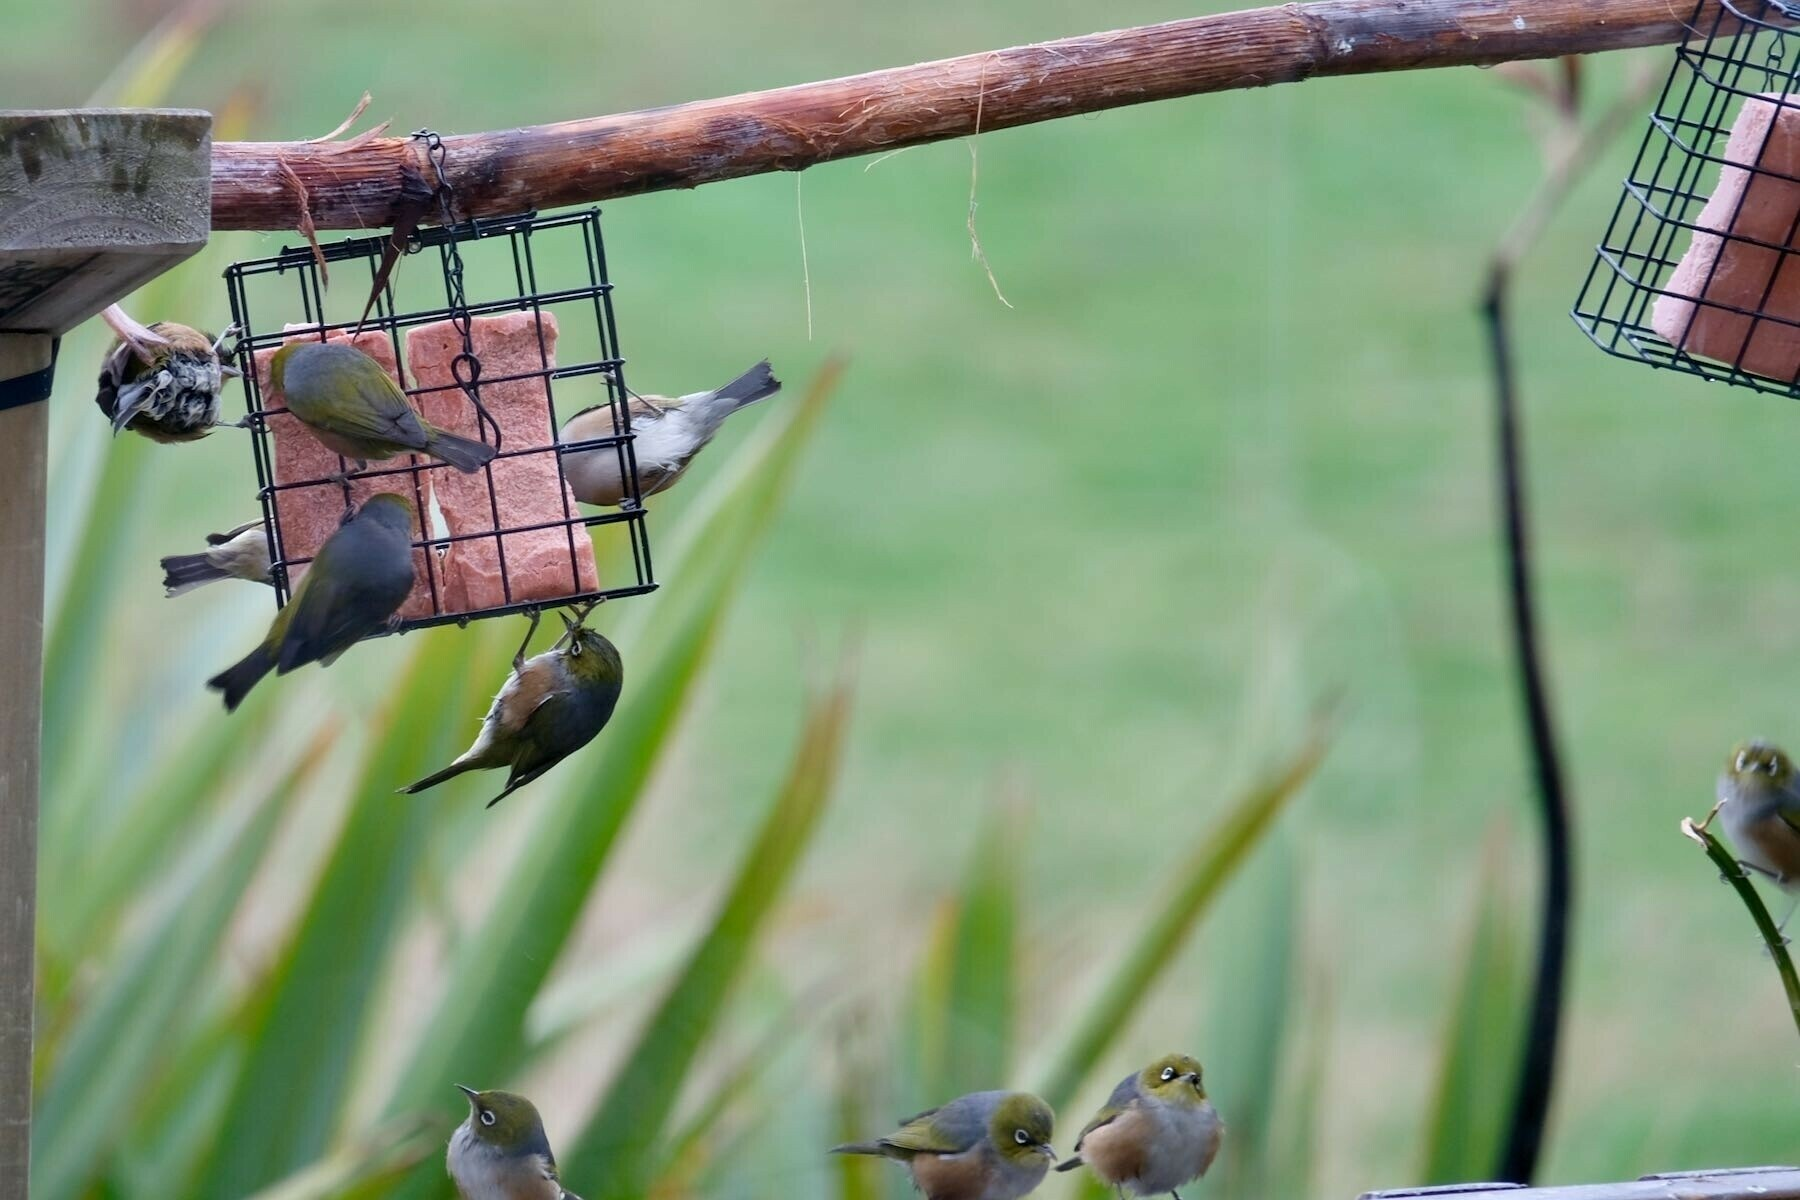 Many tiny birds on and near the feeder.